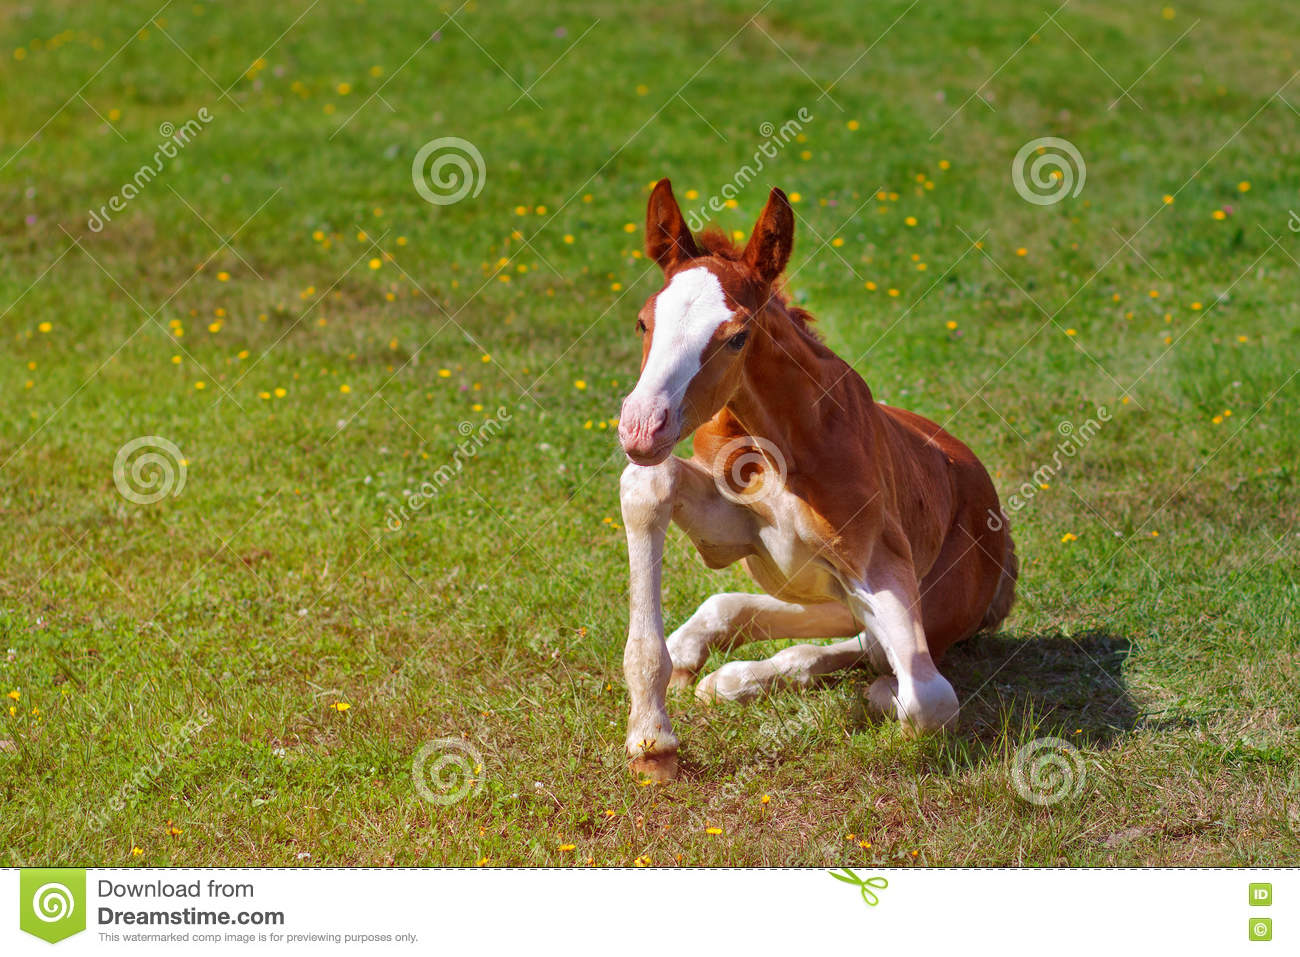 Newborn Baby Horse Tries To Stand On His Feet Stock Image Image Of Carefree Affectionate 71434641